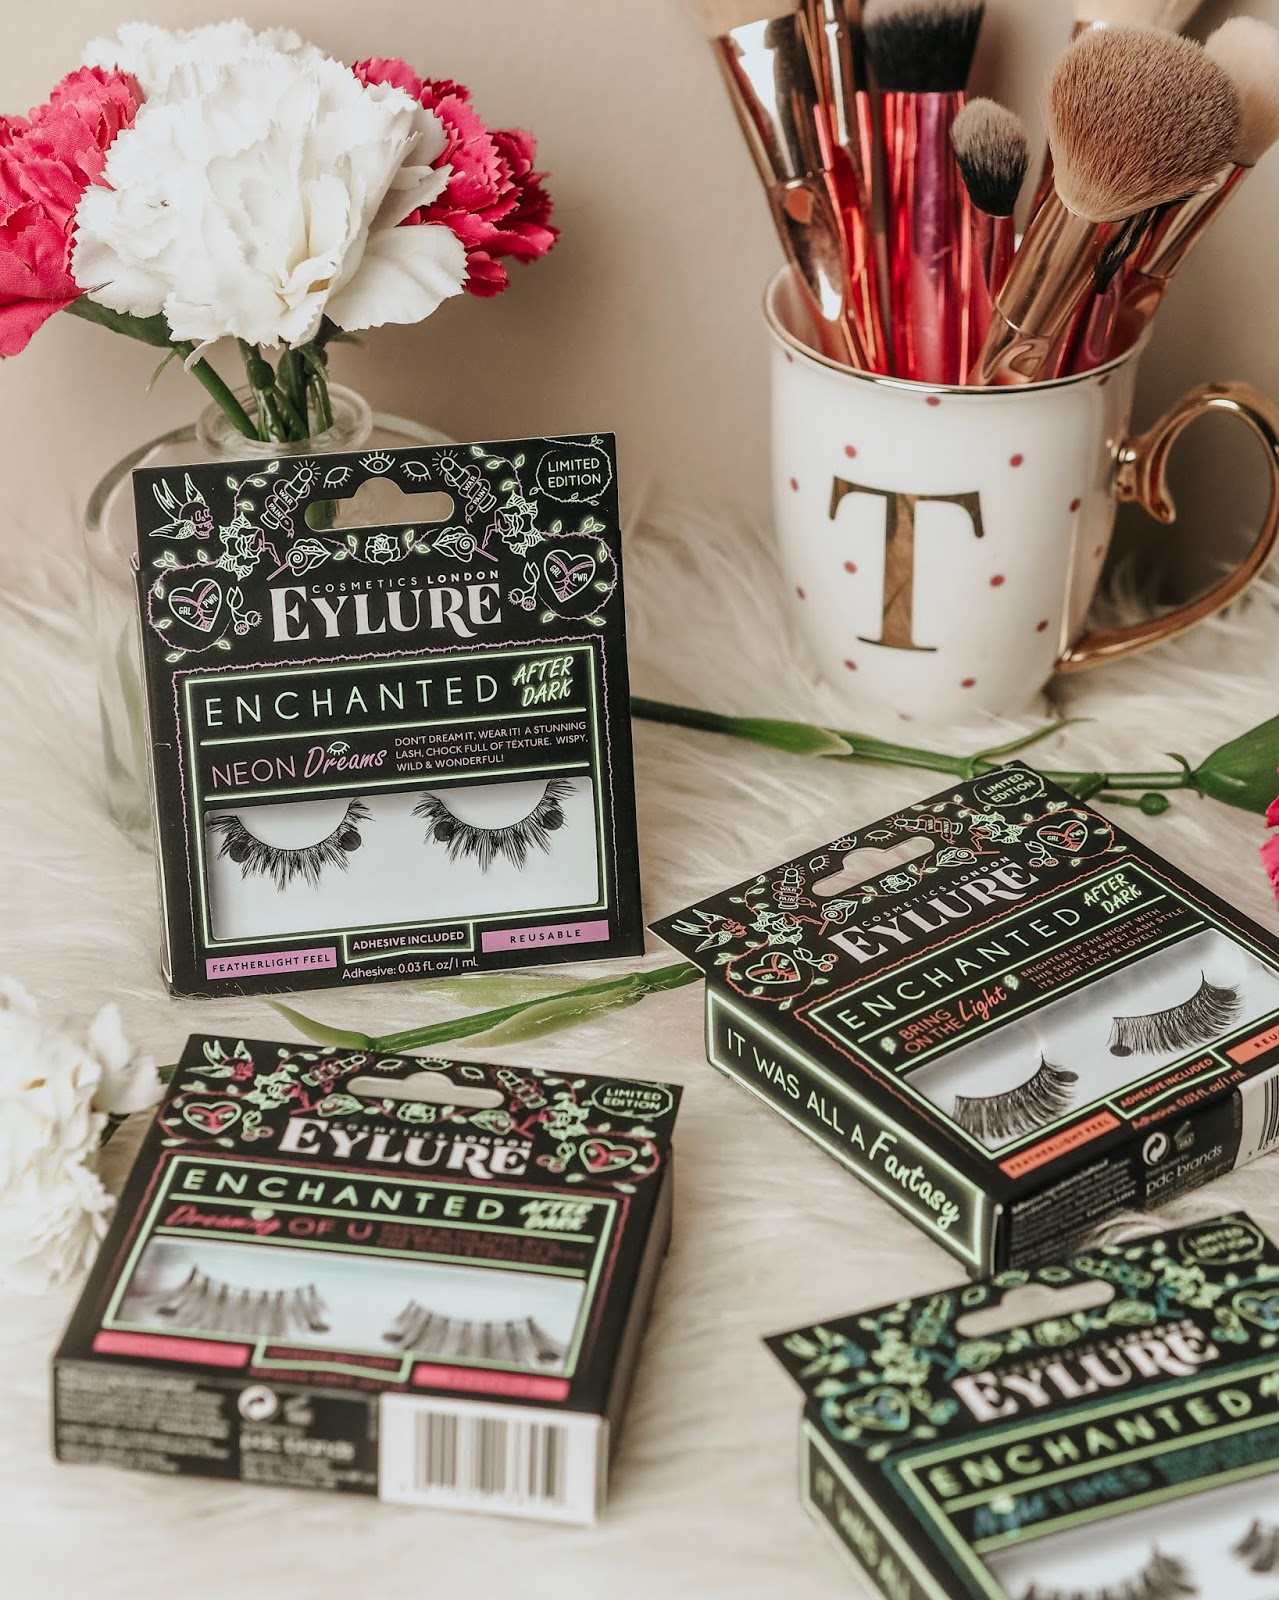 6ddebffb4f5 One brand I always go back to when I NEED to look my best, is Eylure. I'm  not an everyday lash wearer, and tend to only bust them out for special  occasions, ...